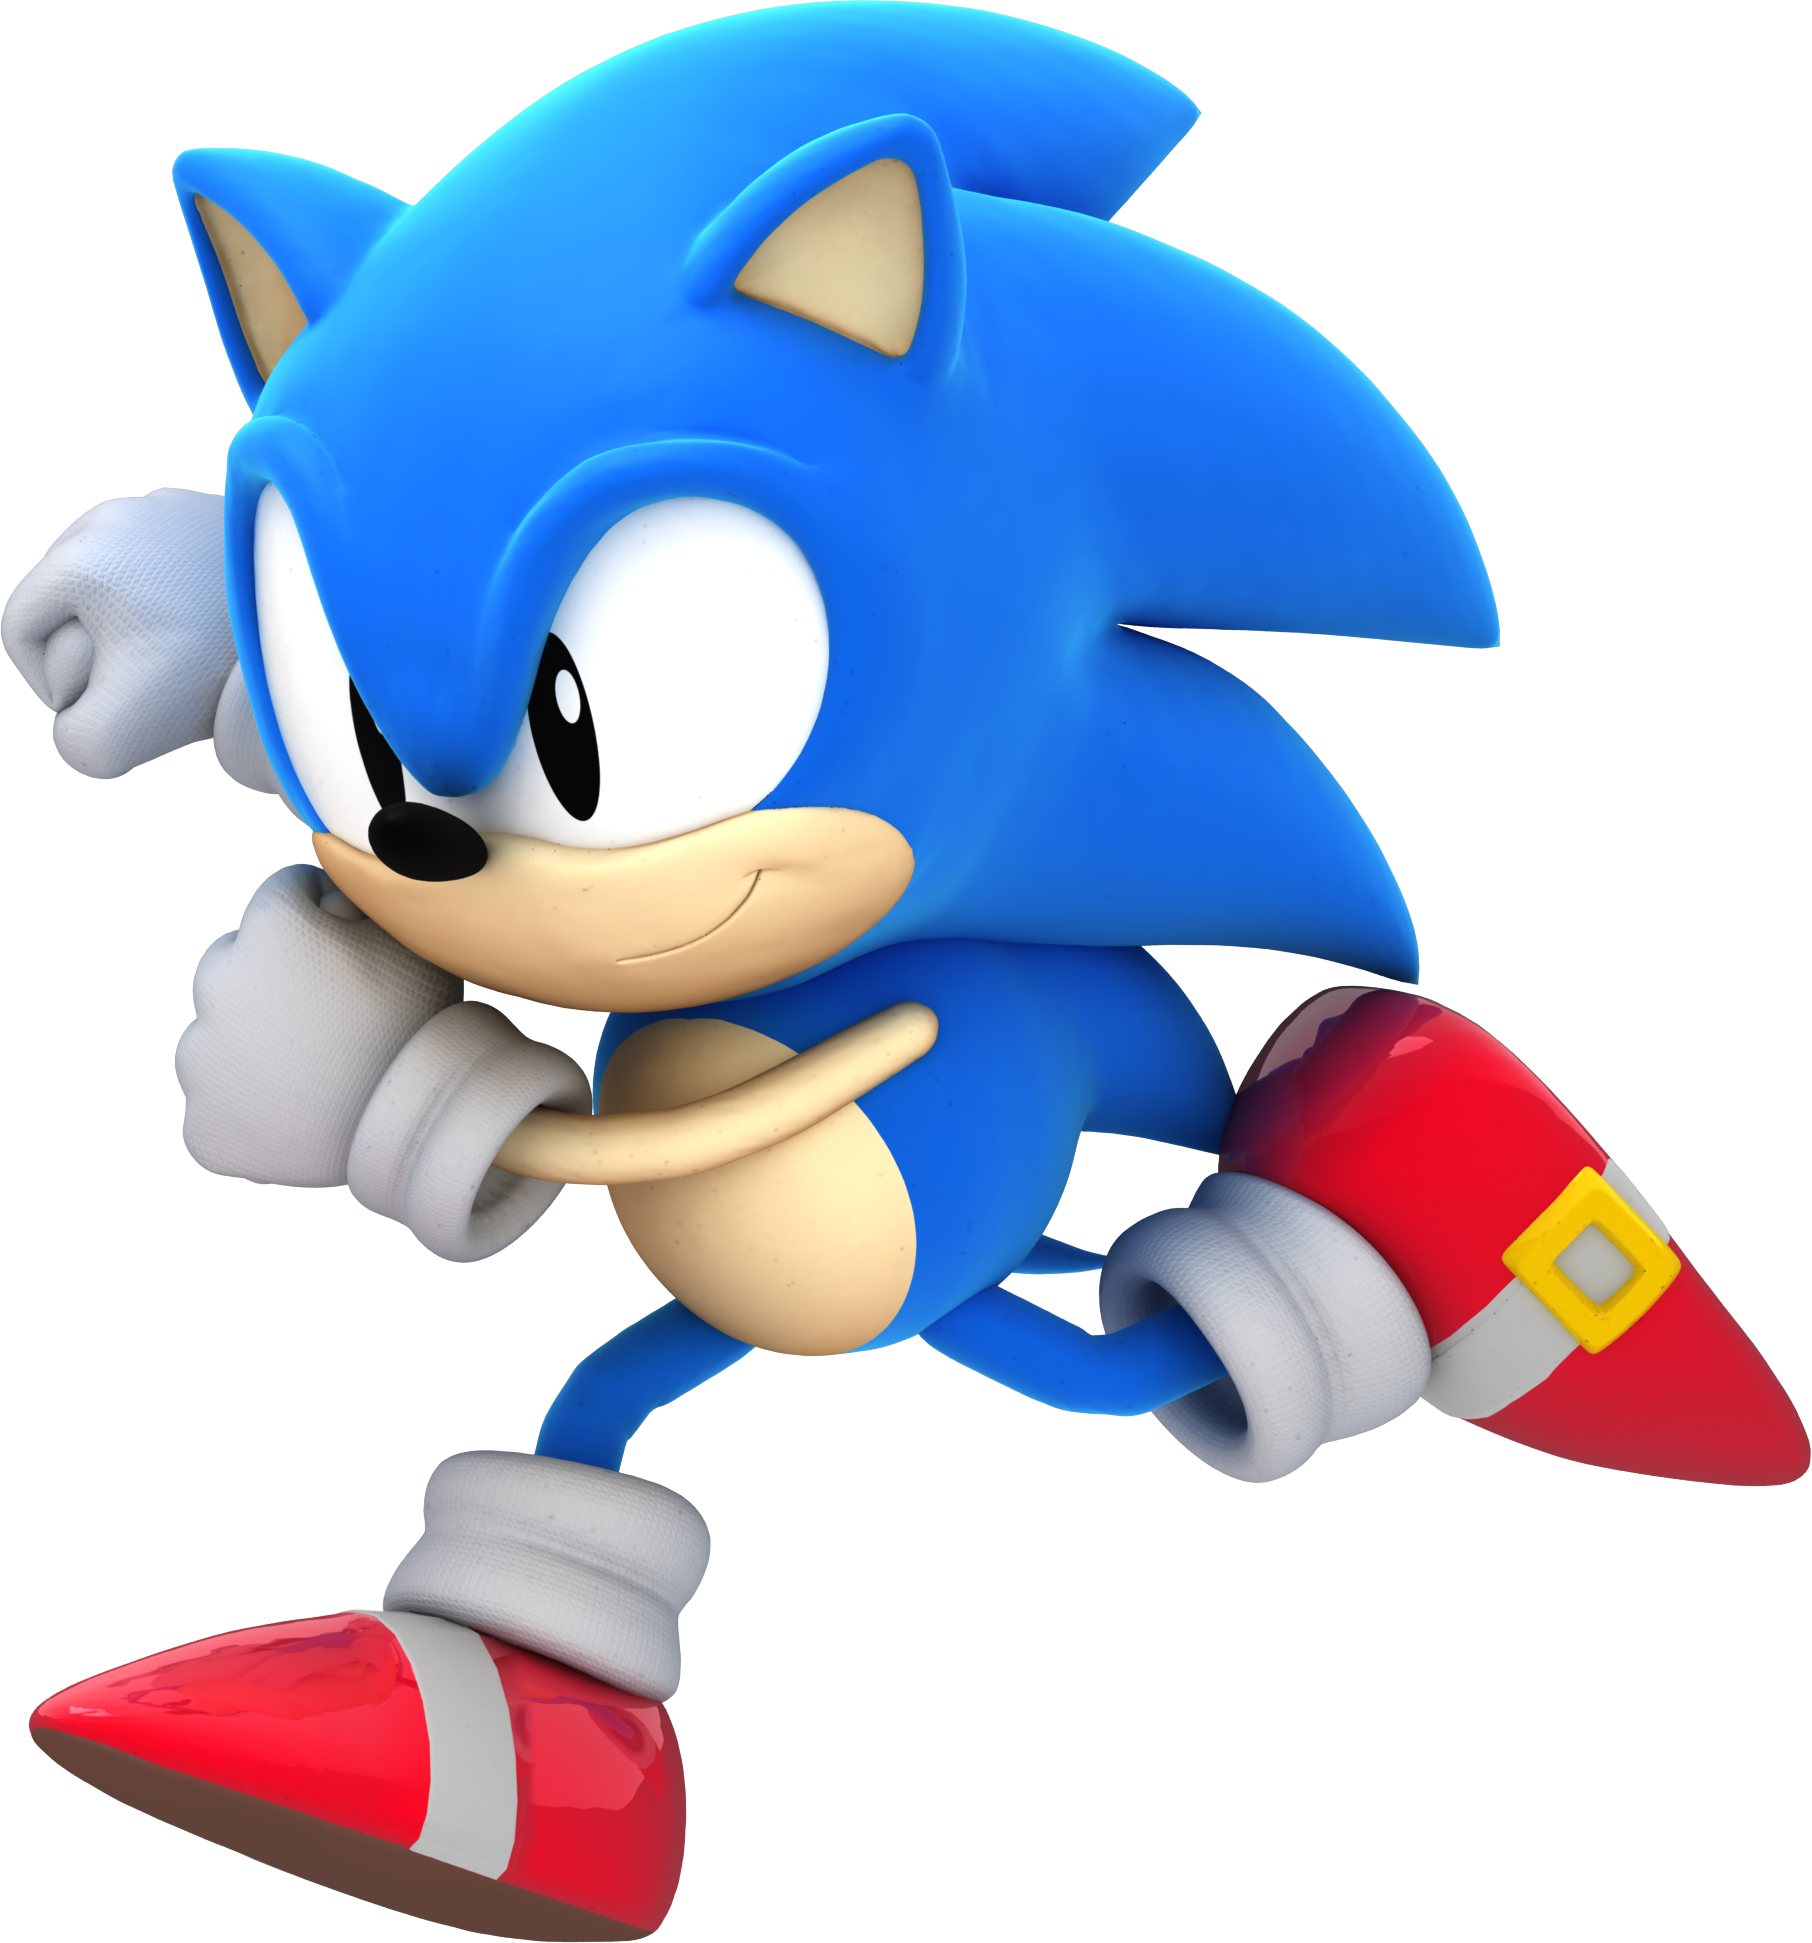 Another Classic Sonic Render By Alsyouri2001 On DeviantArt